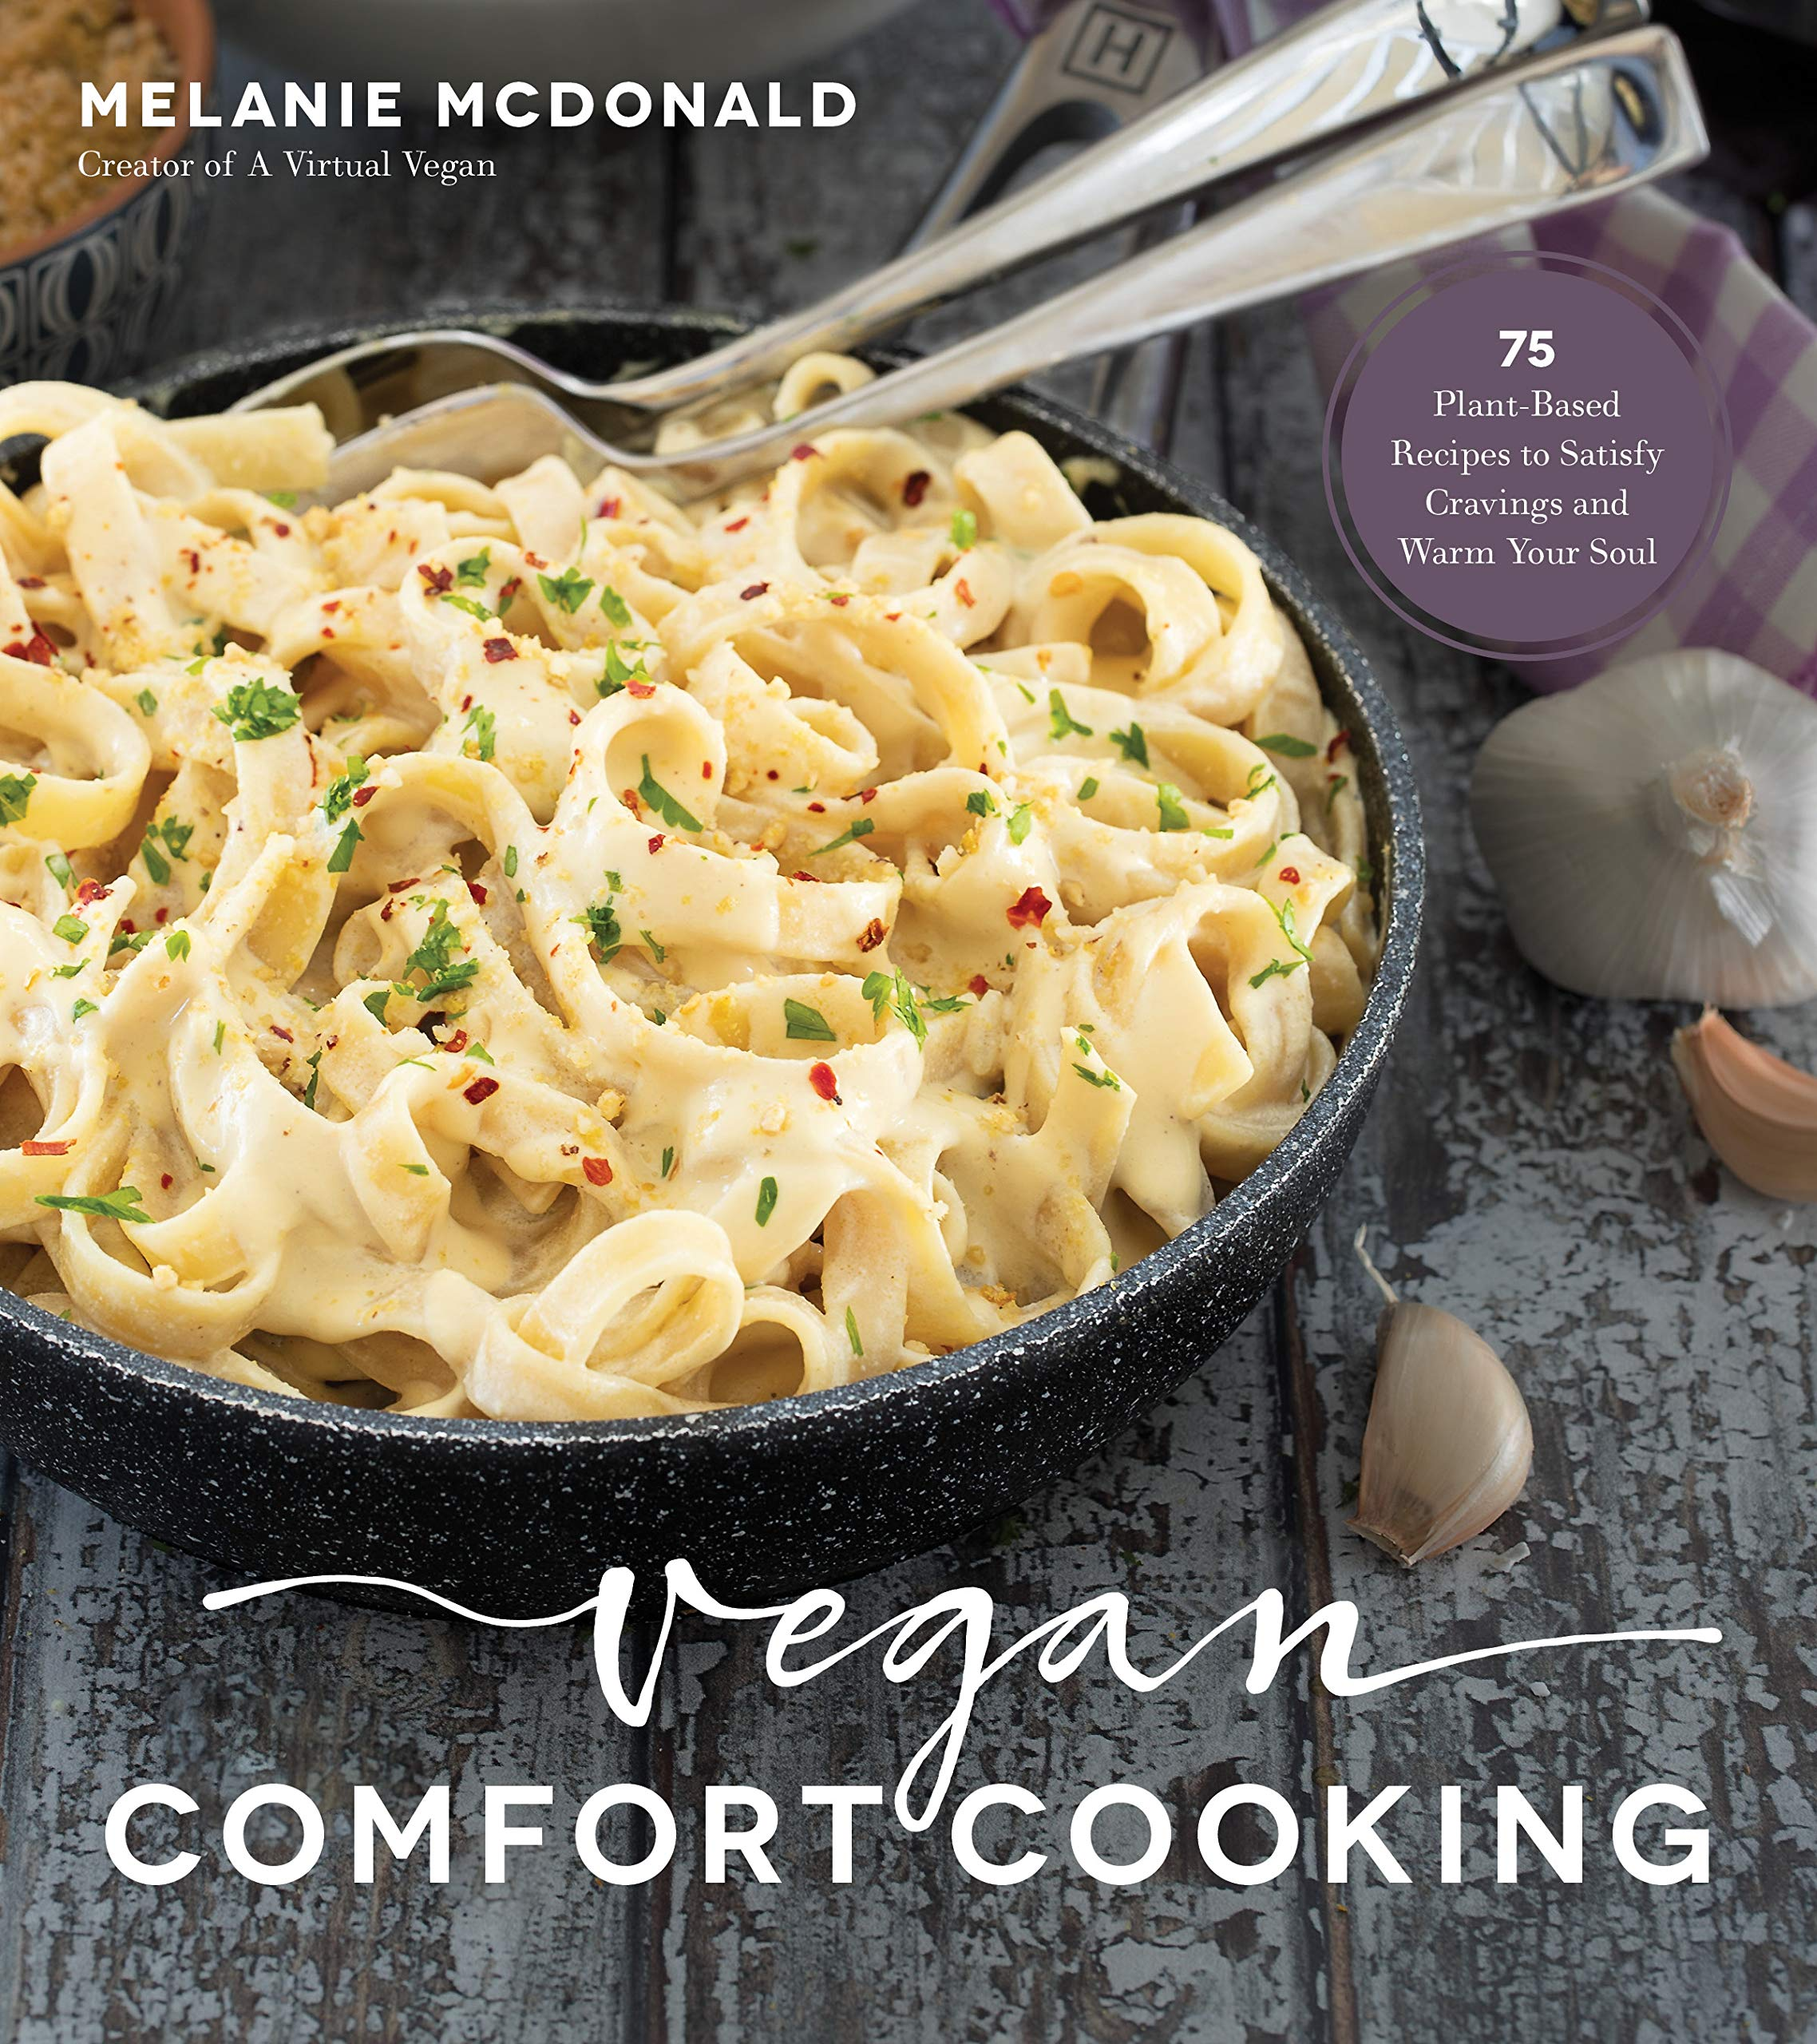 Vegan Comfort Cooking Plant Based Cravings product image